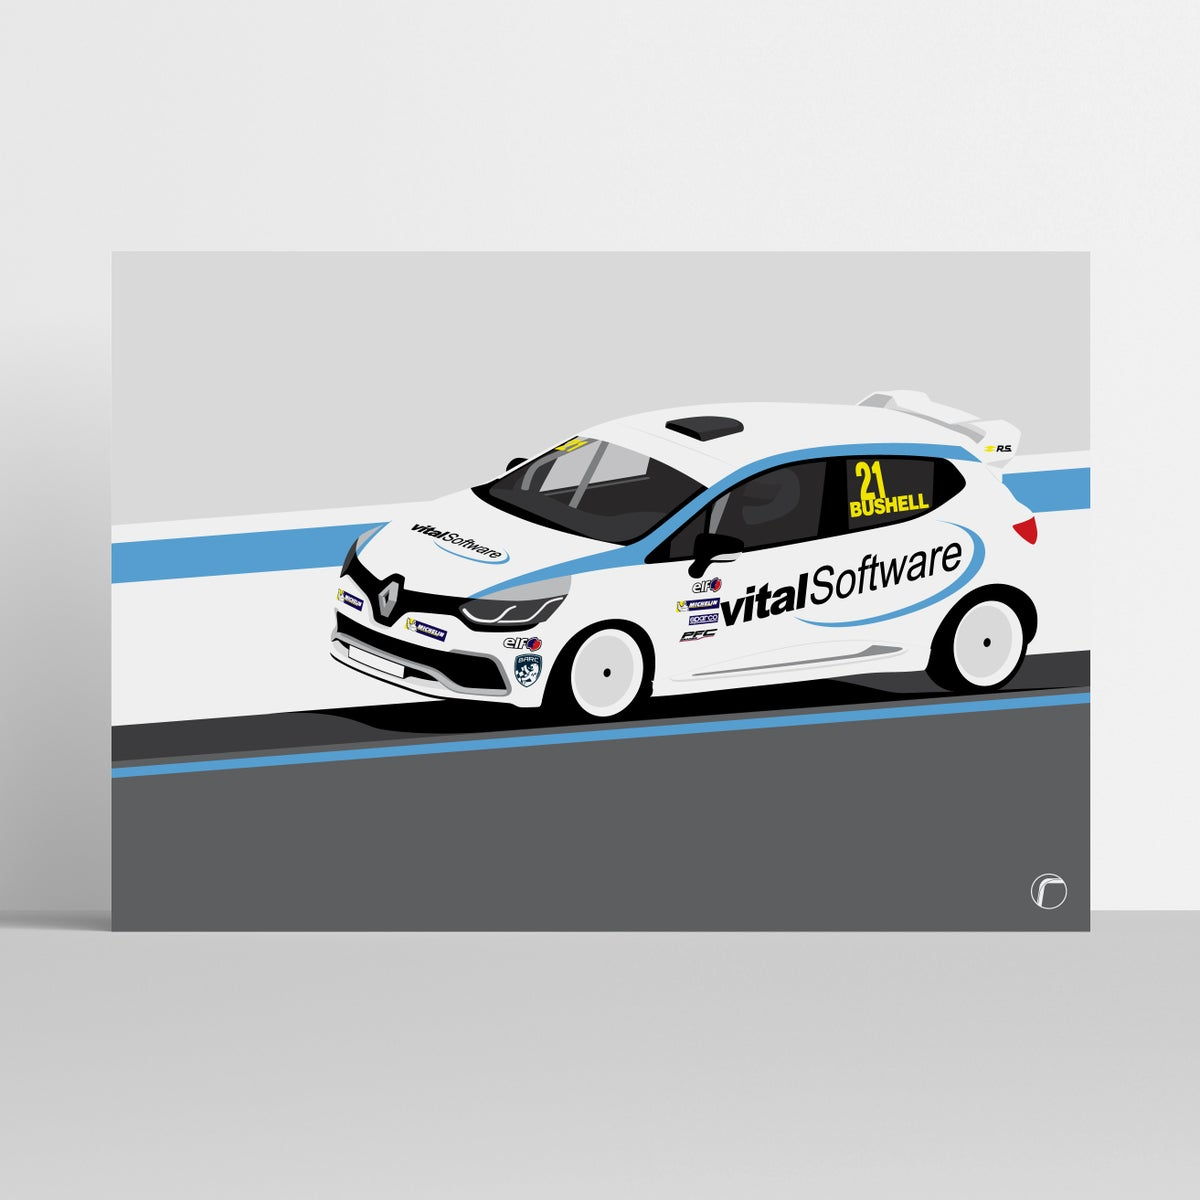 Image of Clio Cup | Mike Bushell